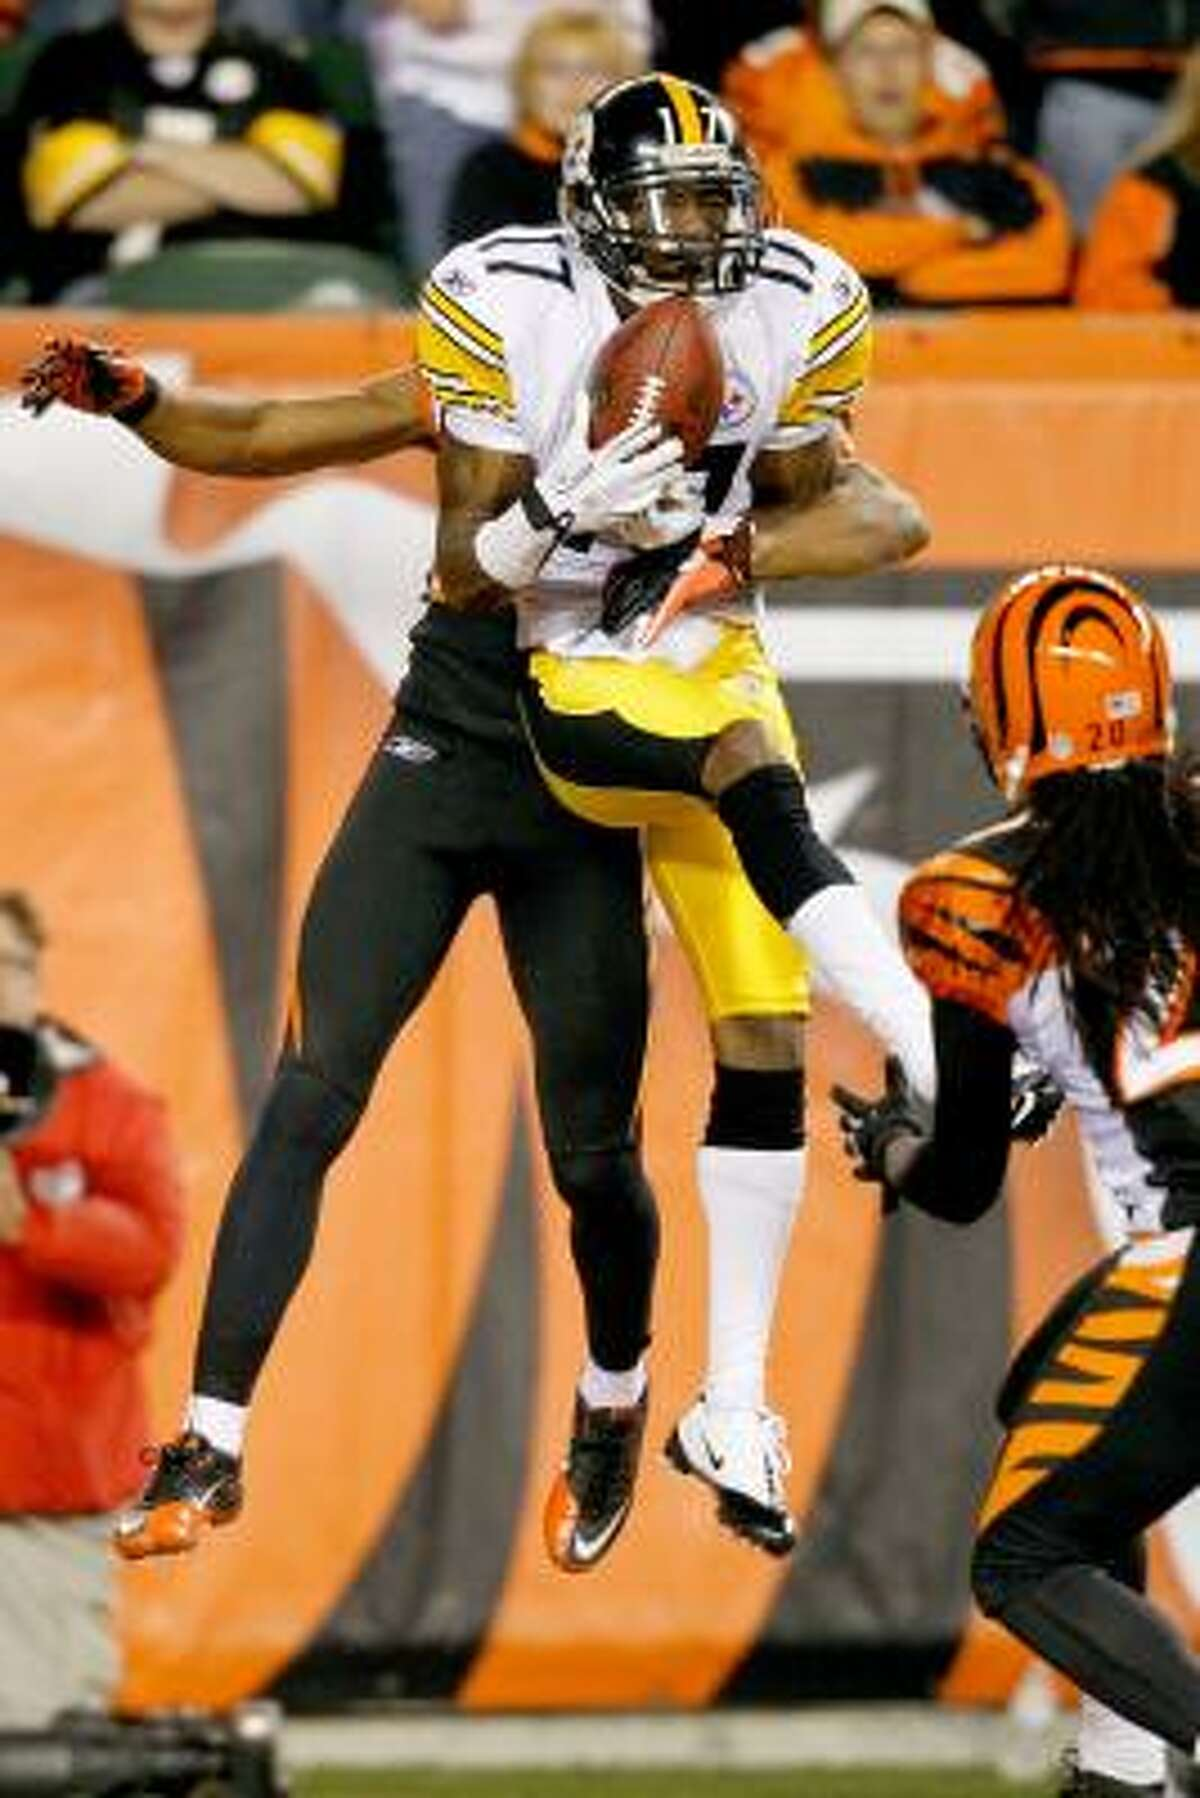 Nov. 8: Steelers 27, Bengals 21 Steelers receiver Mike Wallace catches a pass for a touchdown against Bengals cornerback Leon Hall.